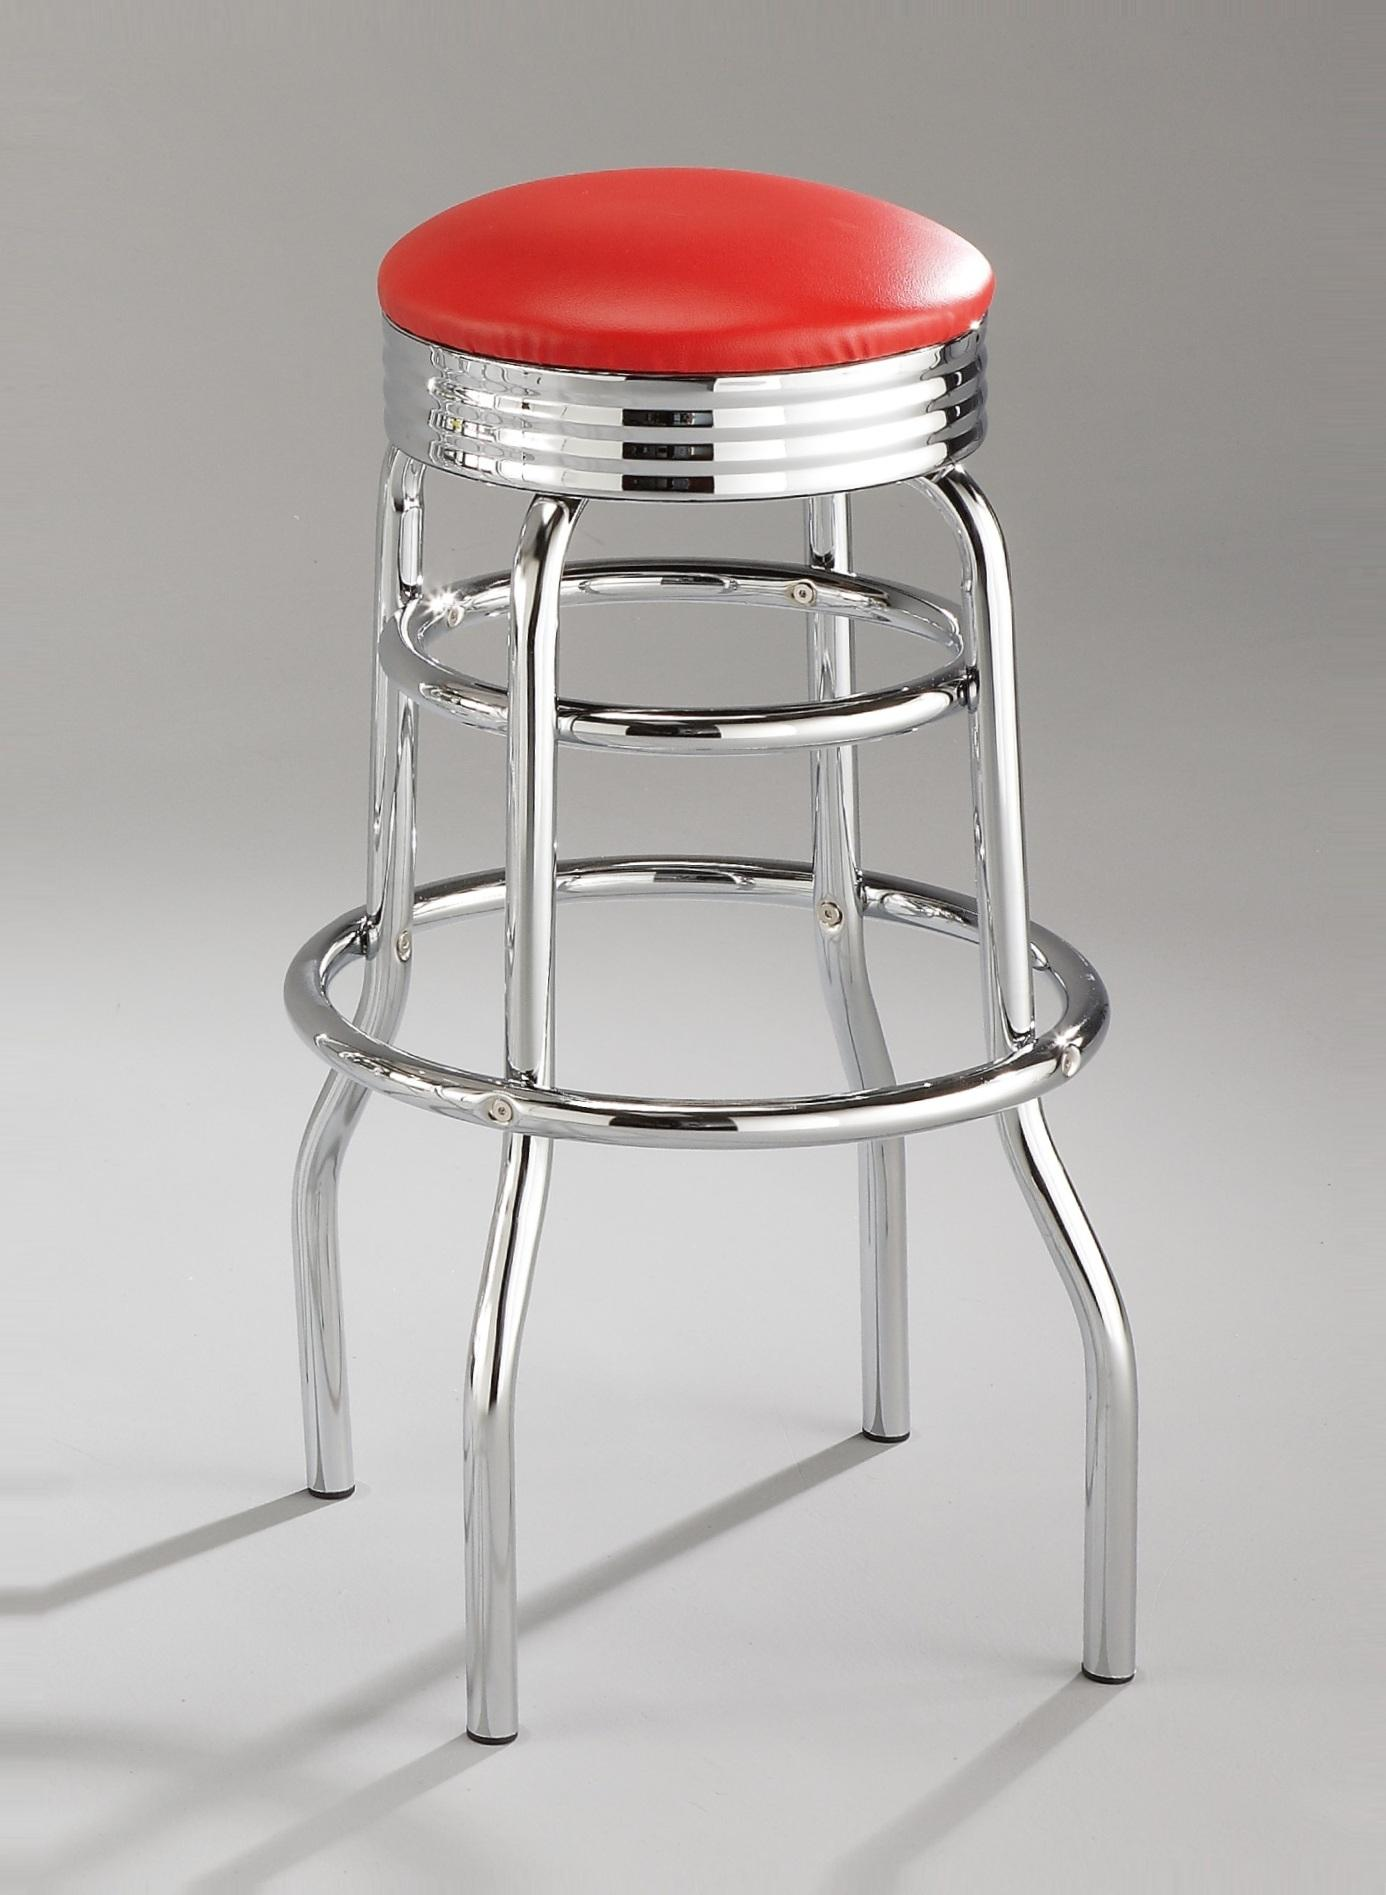 Metal Leg Frame Round Bar Stool Chair - SCH035 | & Sam Yi: Furniture Manufacturer in Dining Room Chair; Home ... islam-shia.org